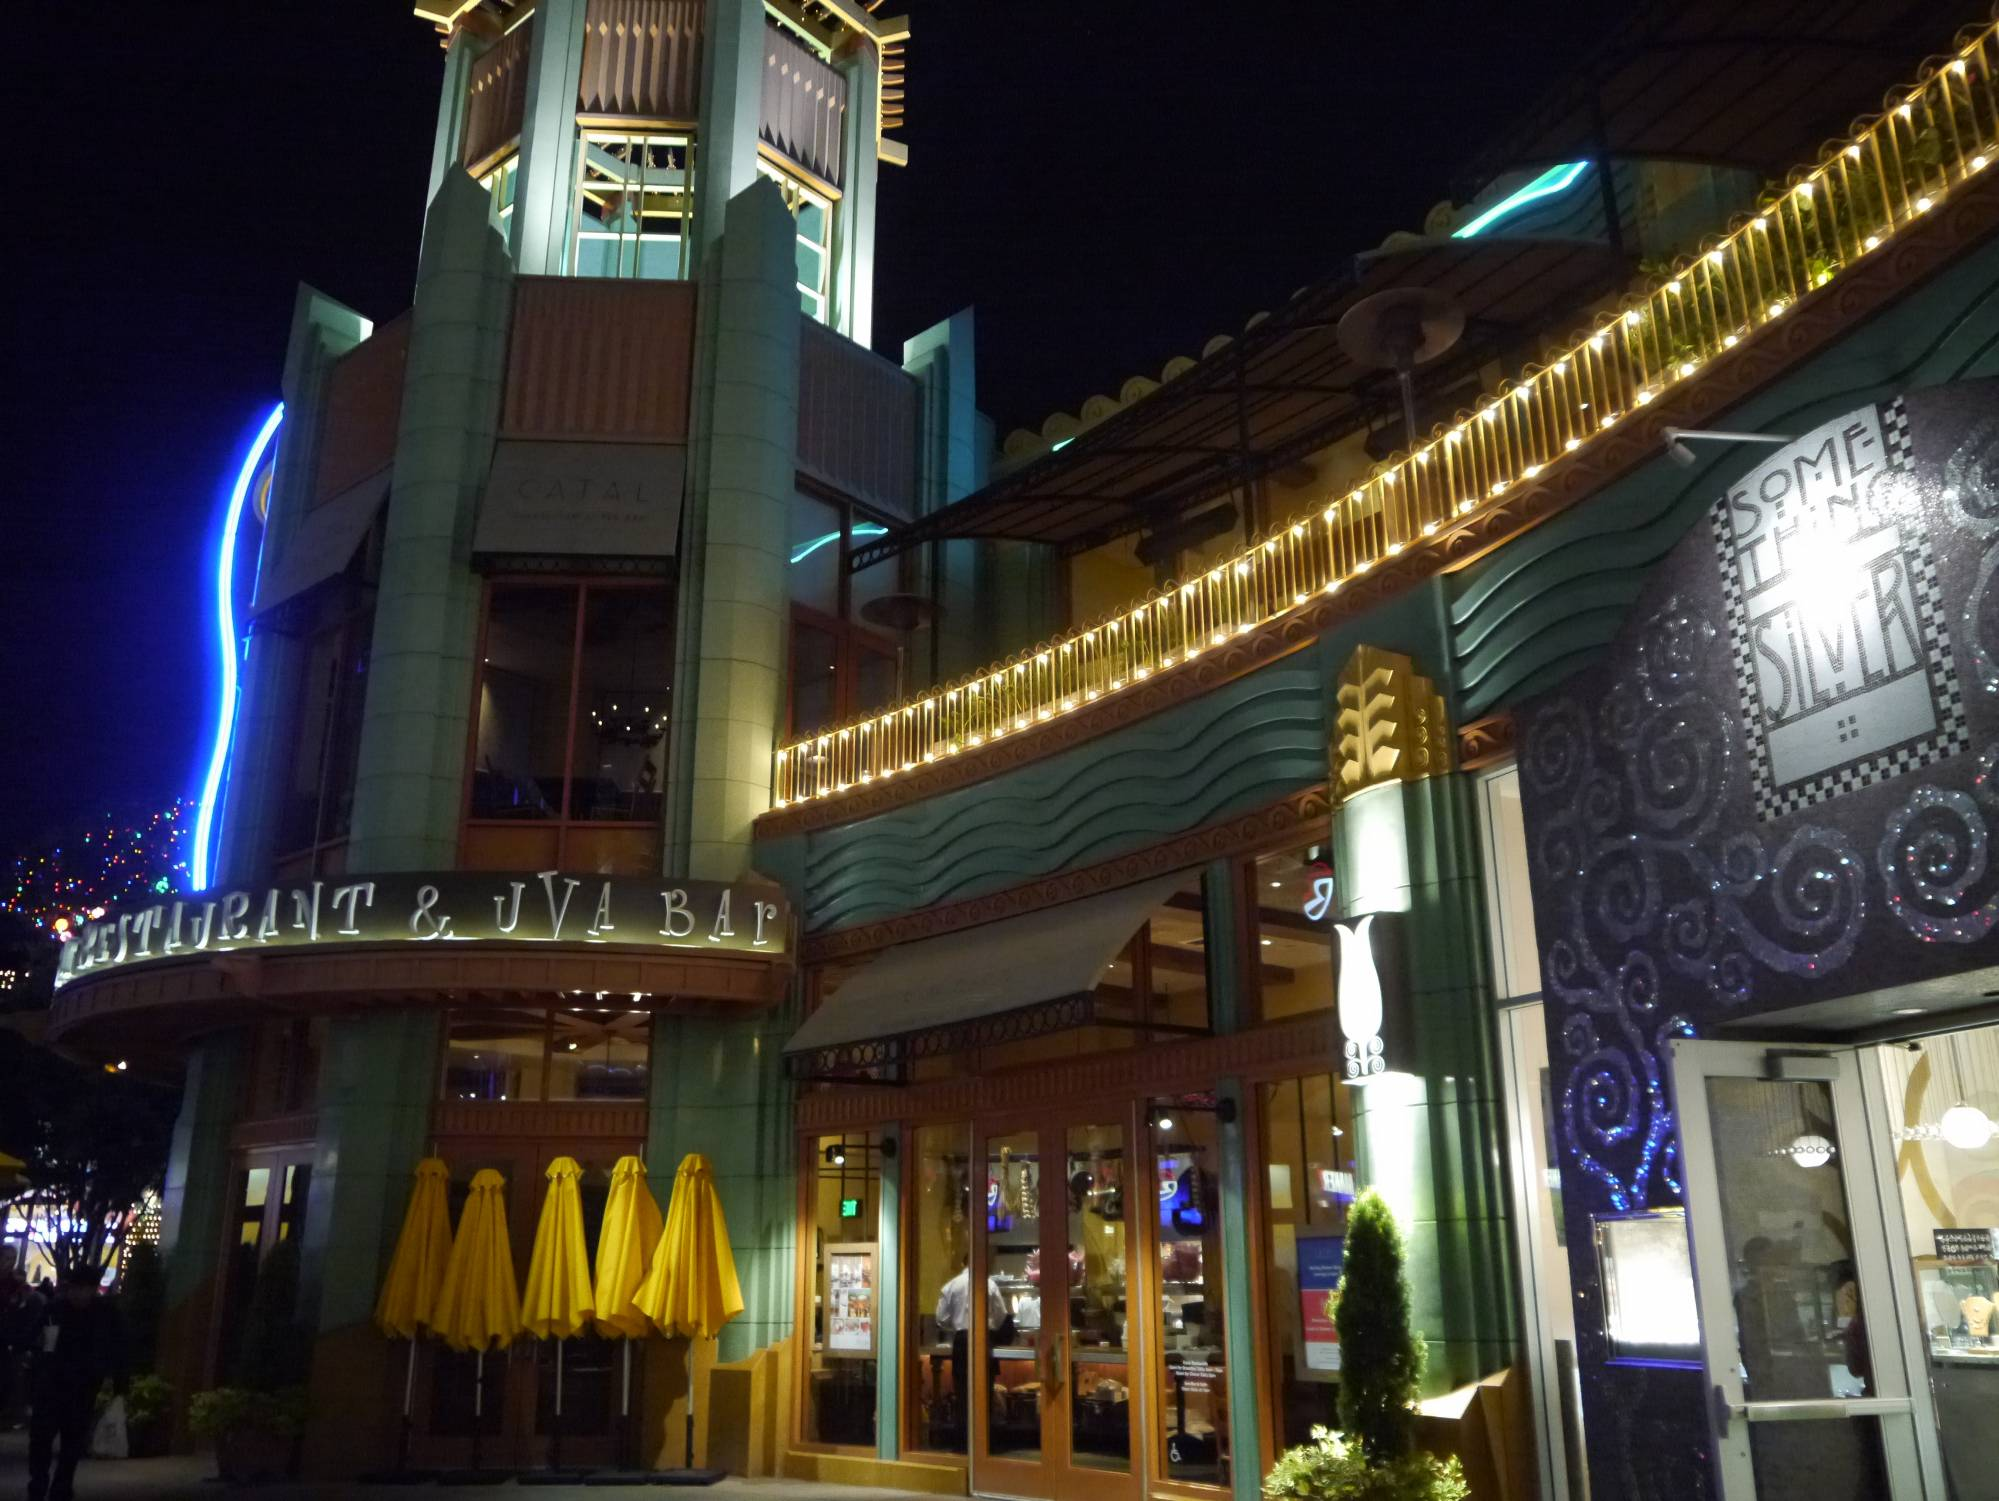 Enjoy the atmosphere and menu at Catal in Disneyland's Downtown Disney |PassPorter.com